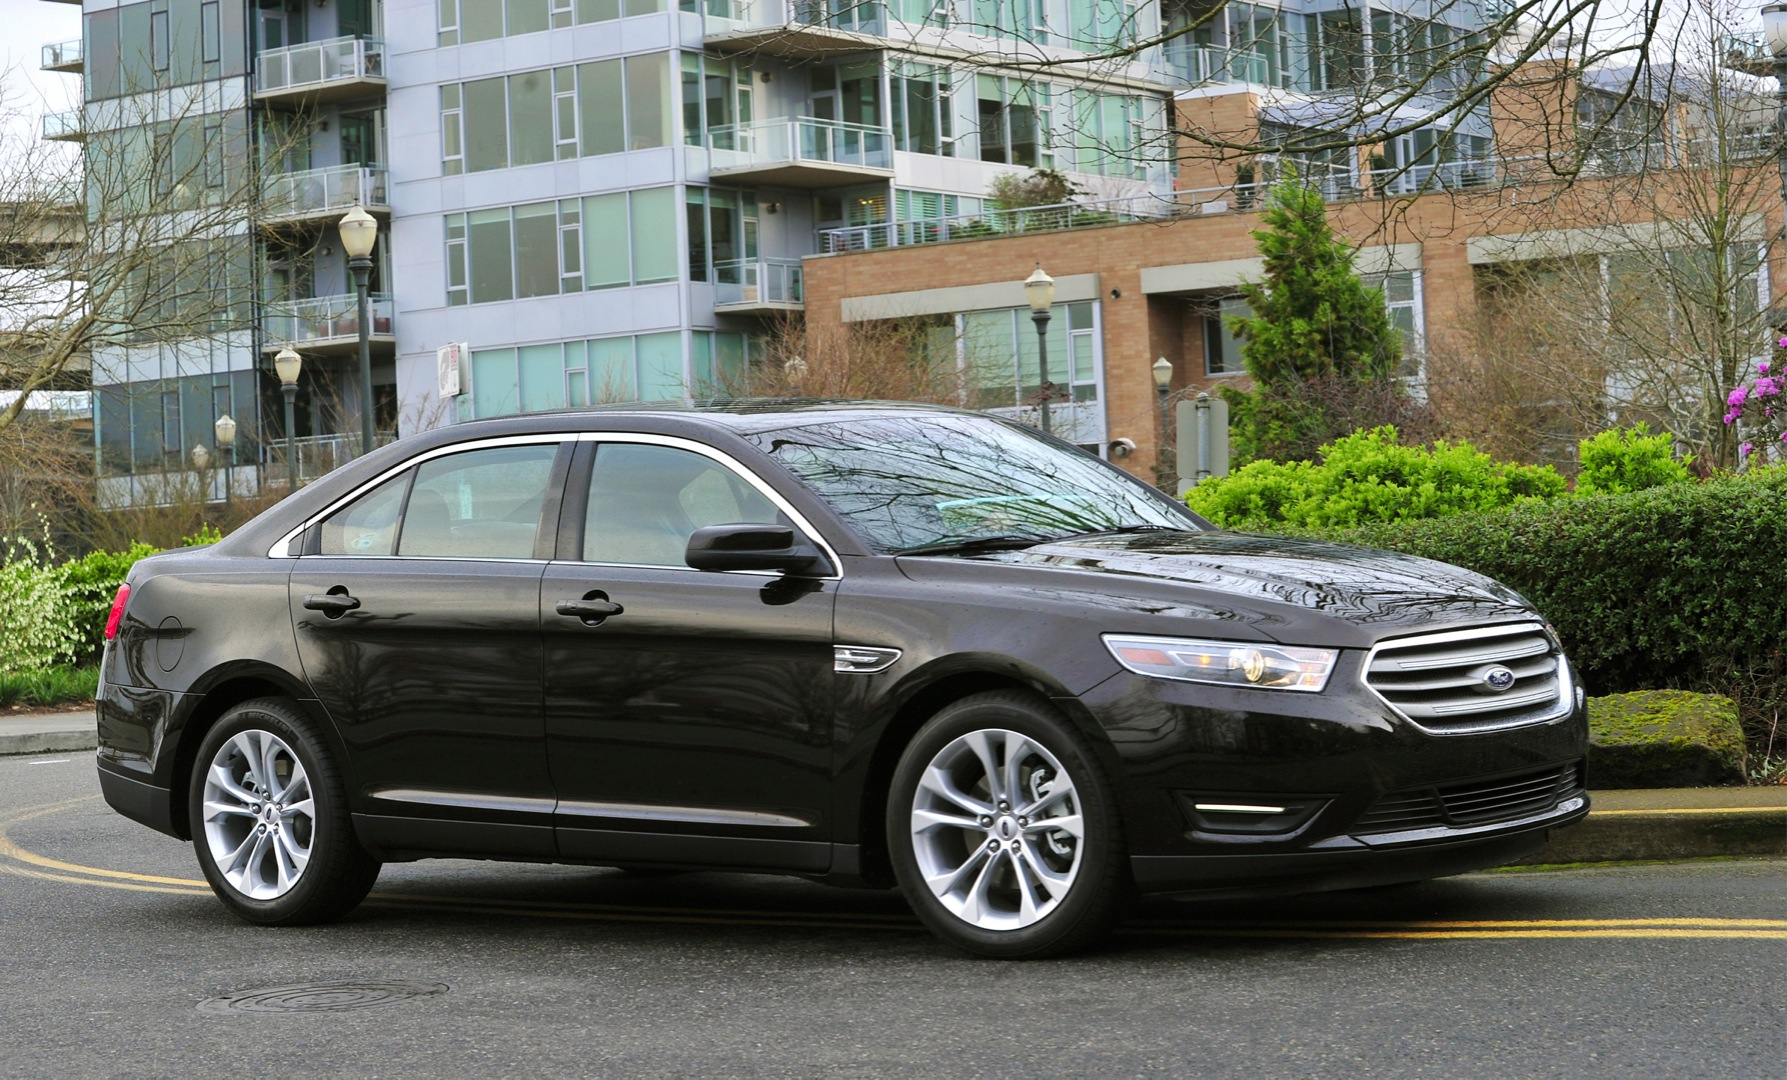 FORD Taurus Photo Gallery #5/10